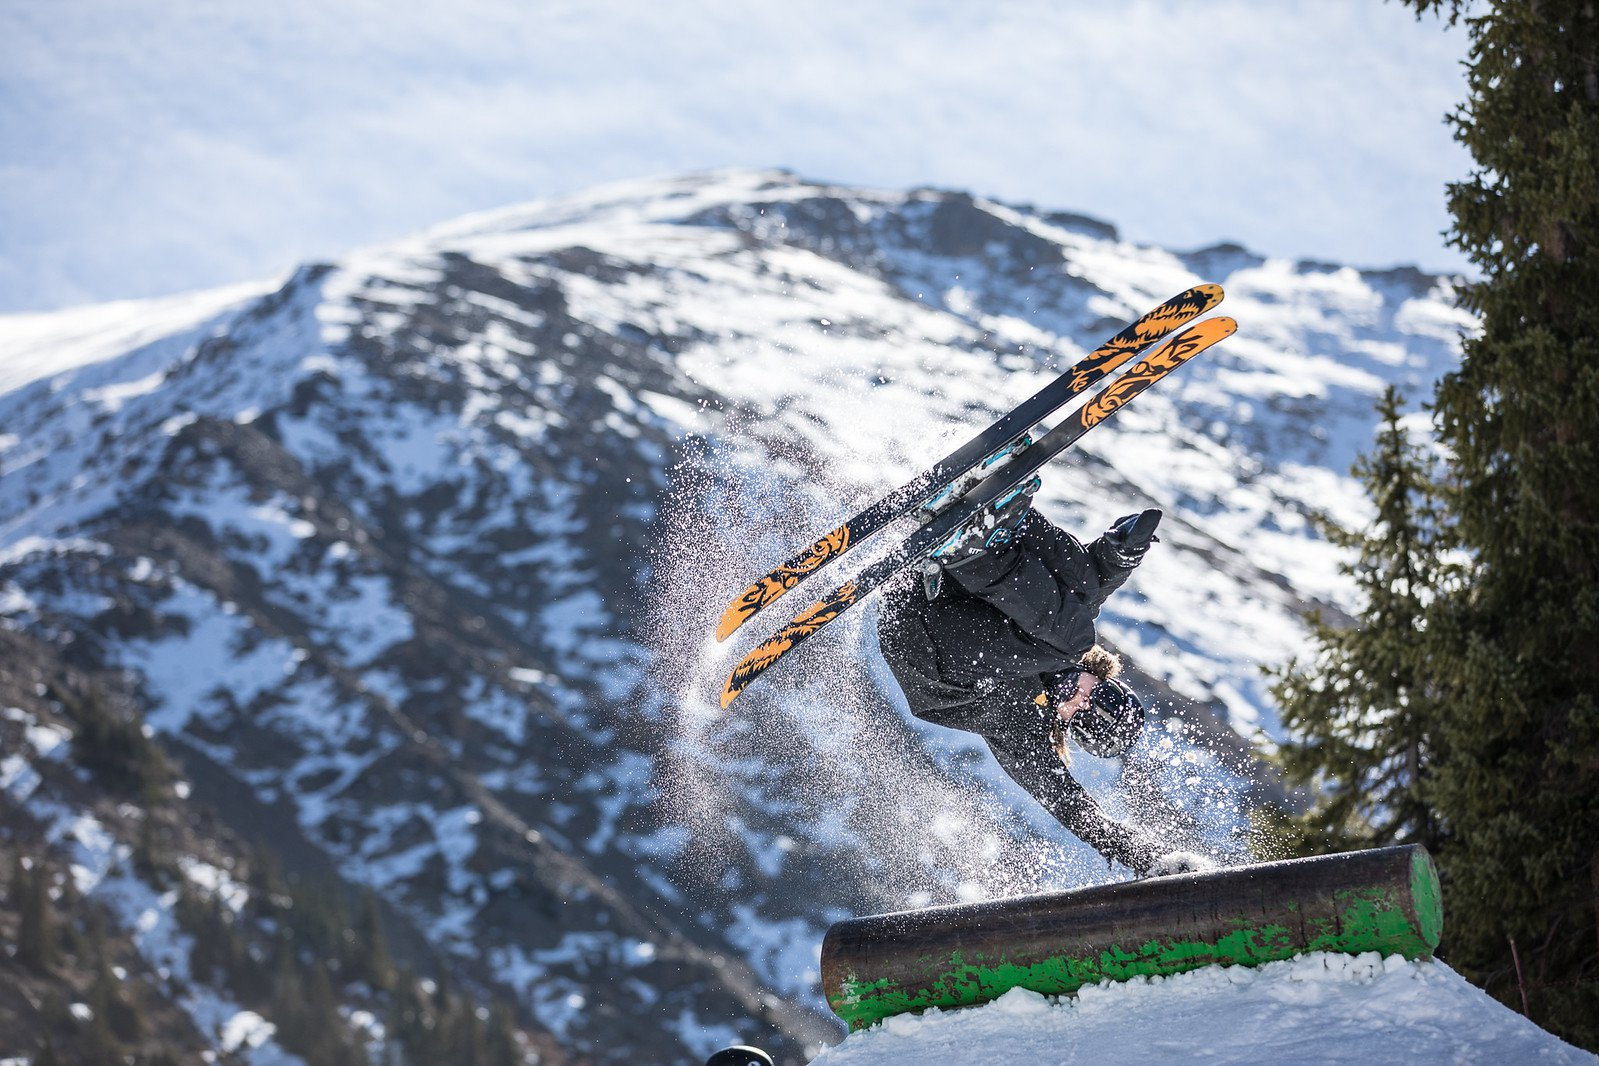 Jack Stys opening day at Abasin